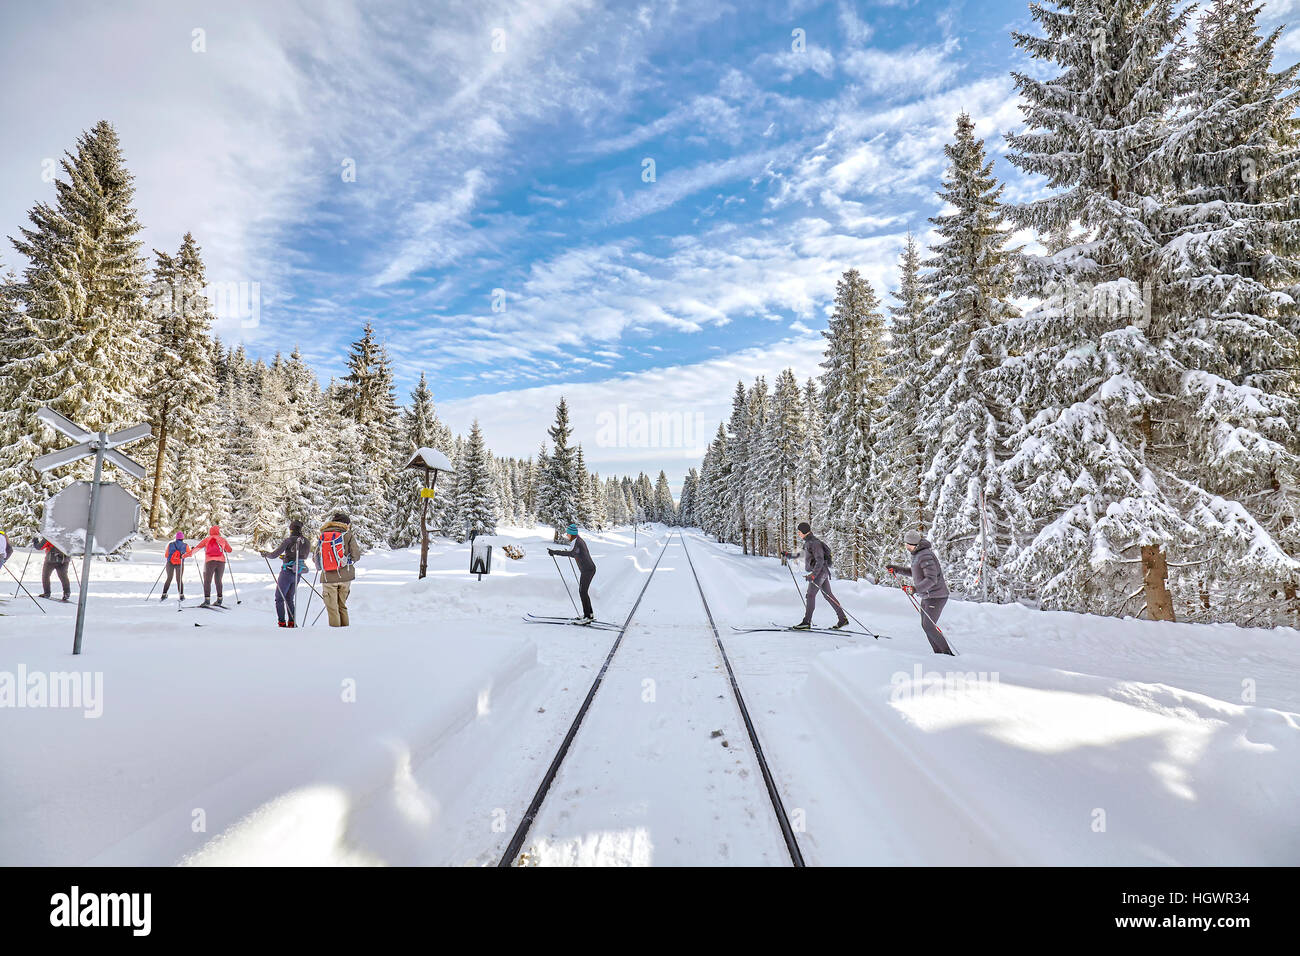 Jakuszyce, Poland - January 07, 2017: Cross-country skiers passing railroad track in forest. - Stock Image